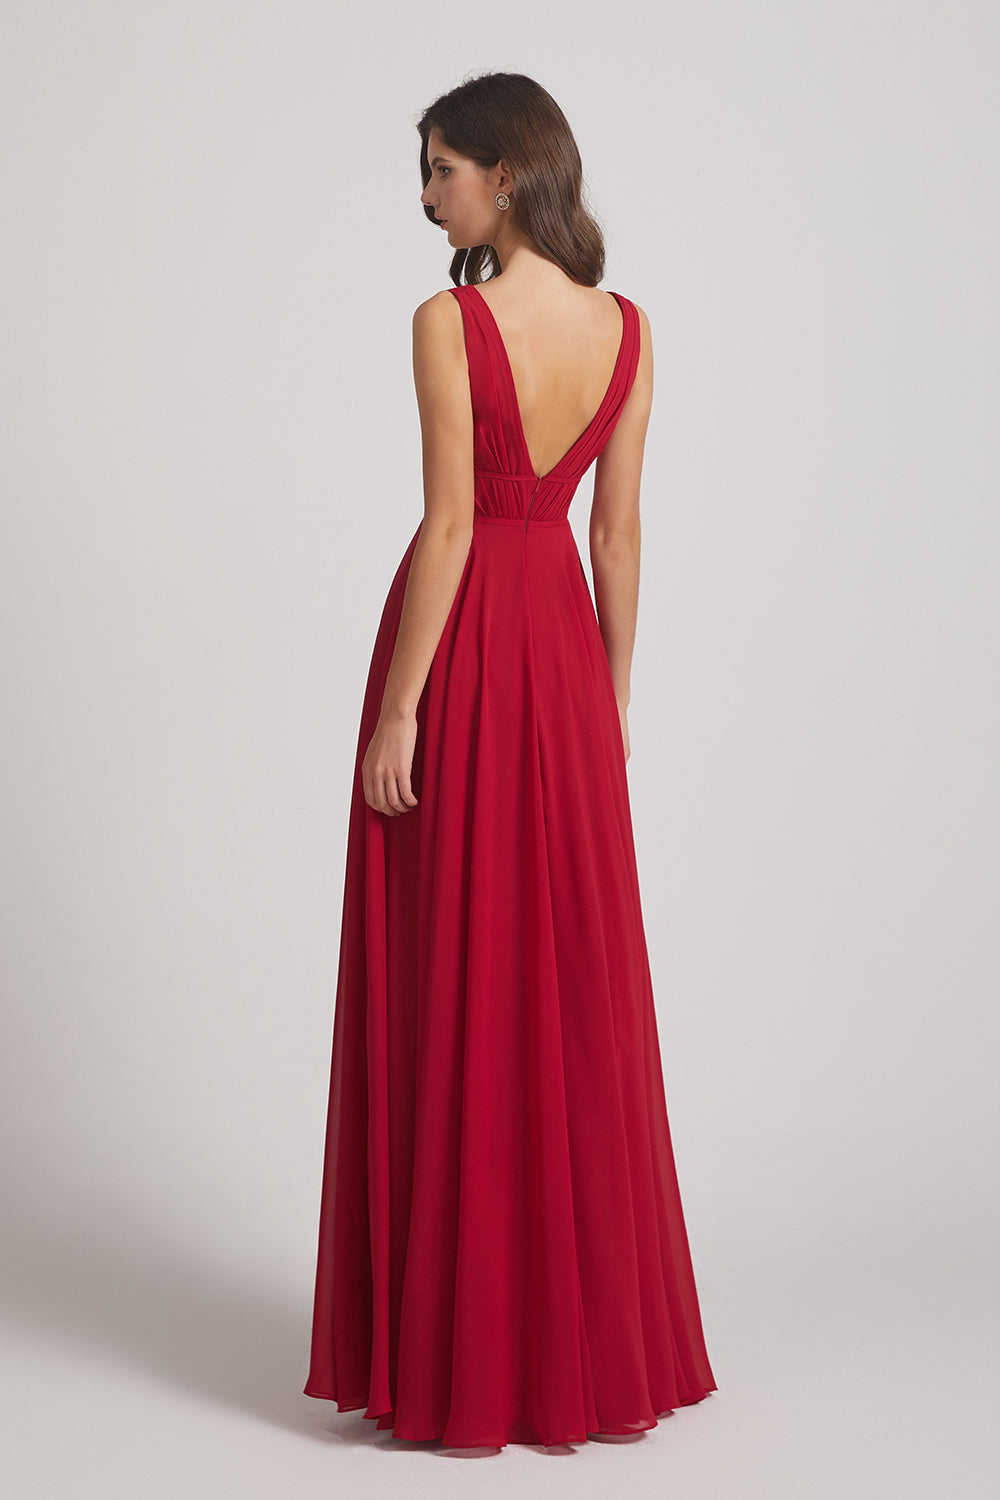 v back seductive bridesmaids dress